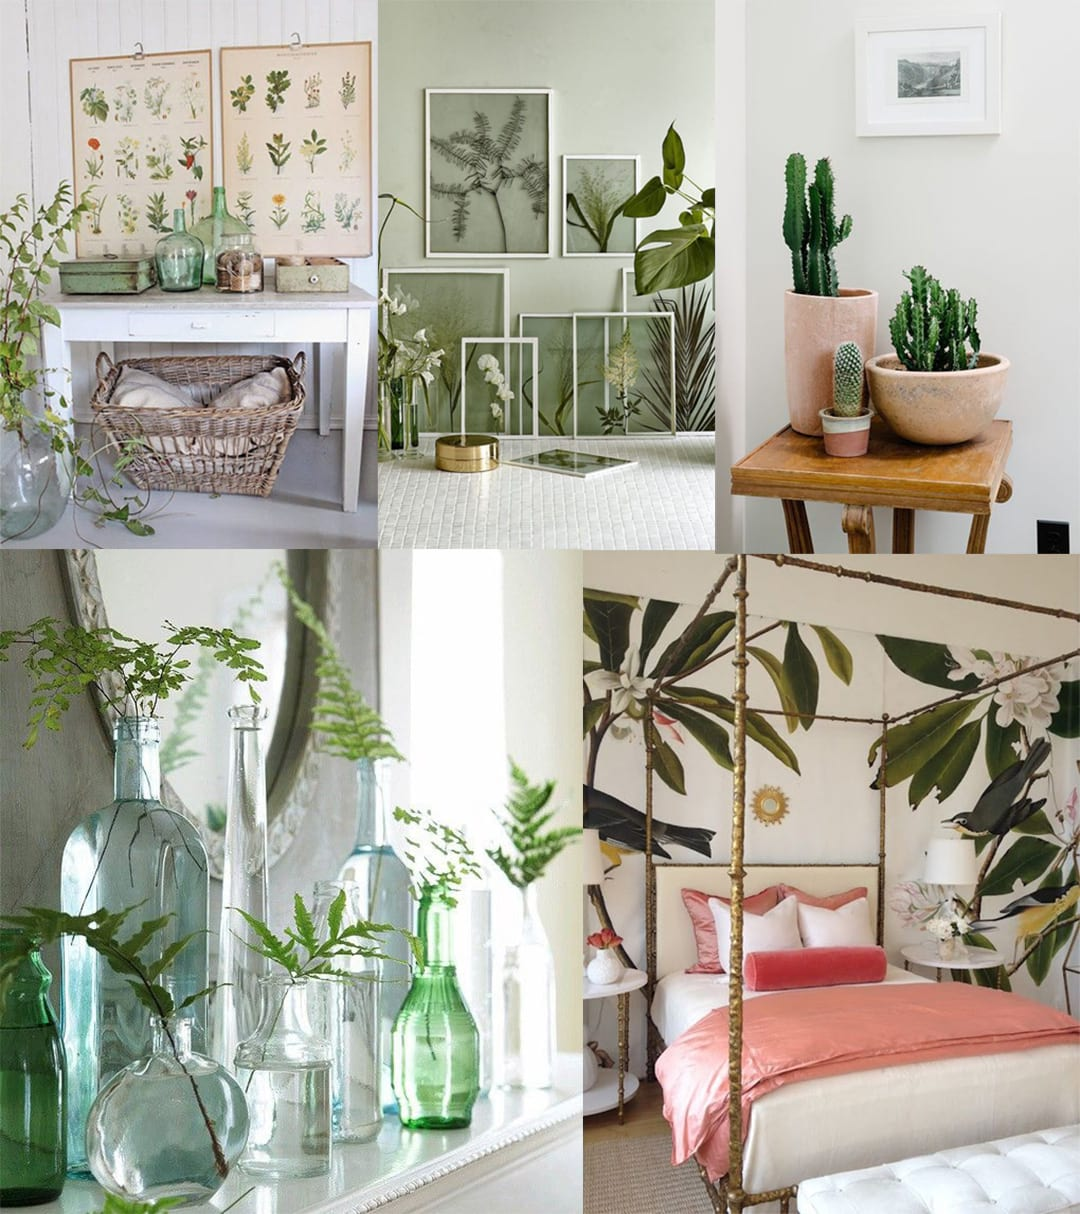 2017 Decor Trends: Botanical Spaces 3